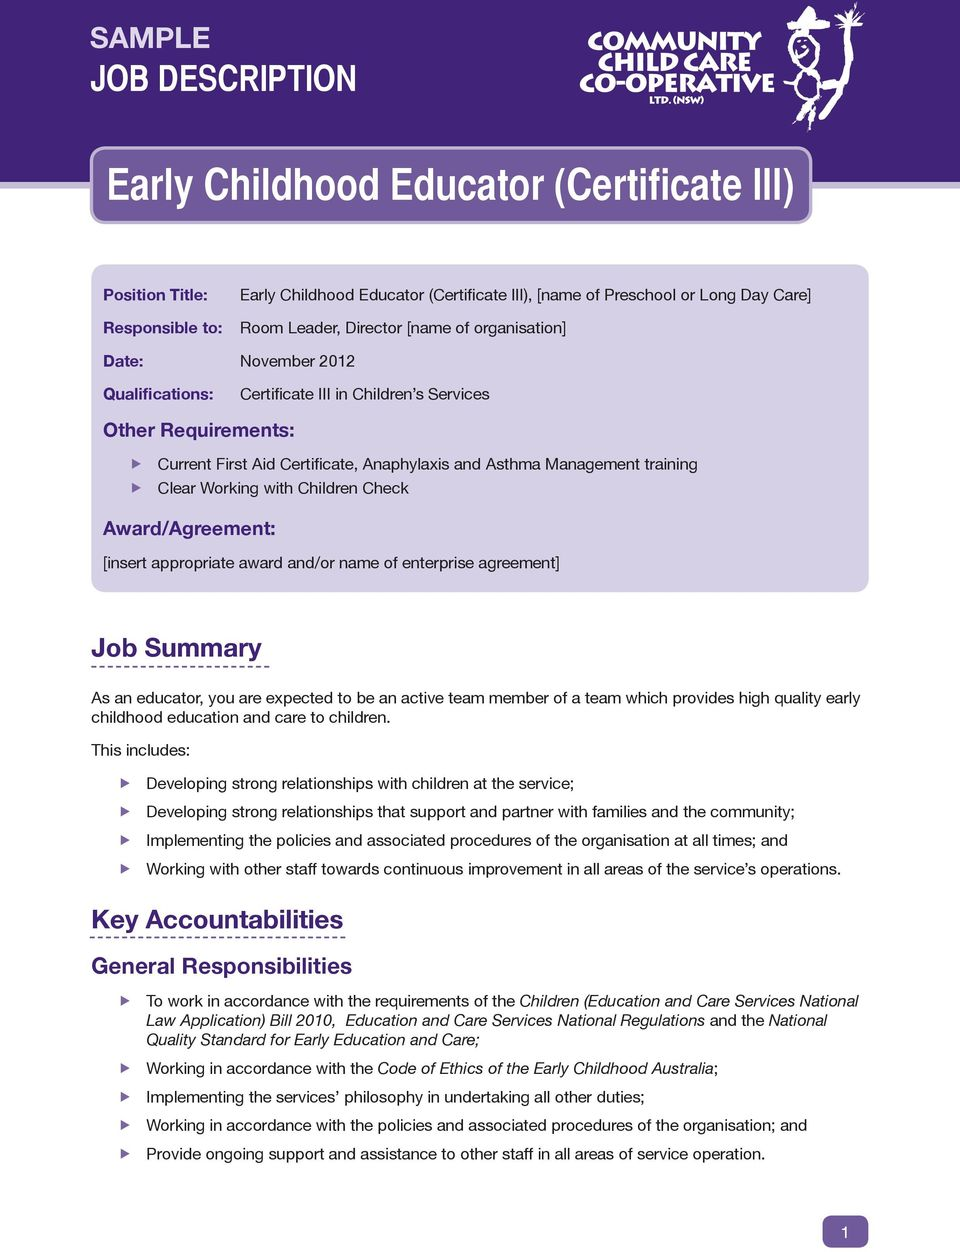 training Clear Working with Children Check Award/Agreement: [insert appropriate award and/or name of enterprise agreement] Job Summary As an educator, you are expected to be an active team member of